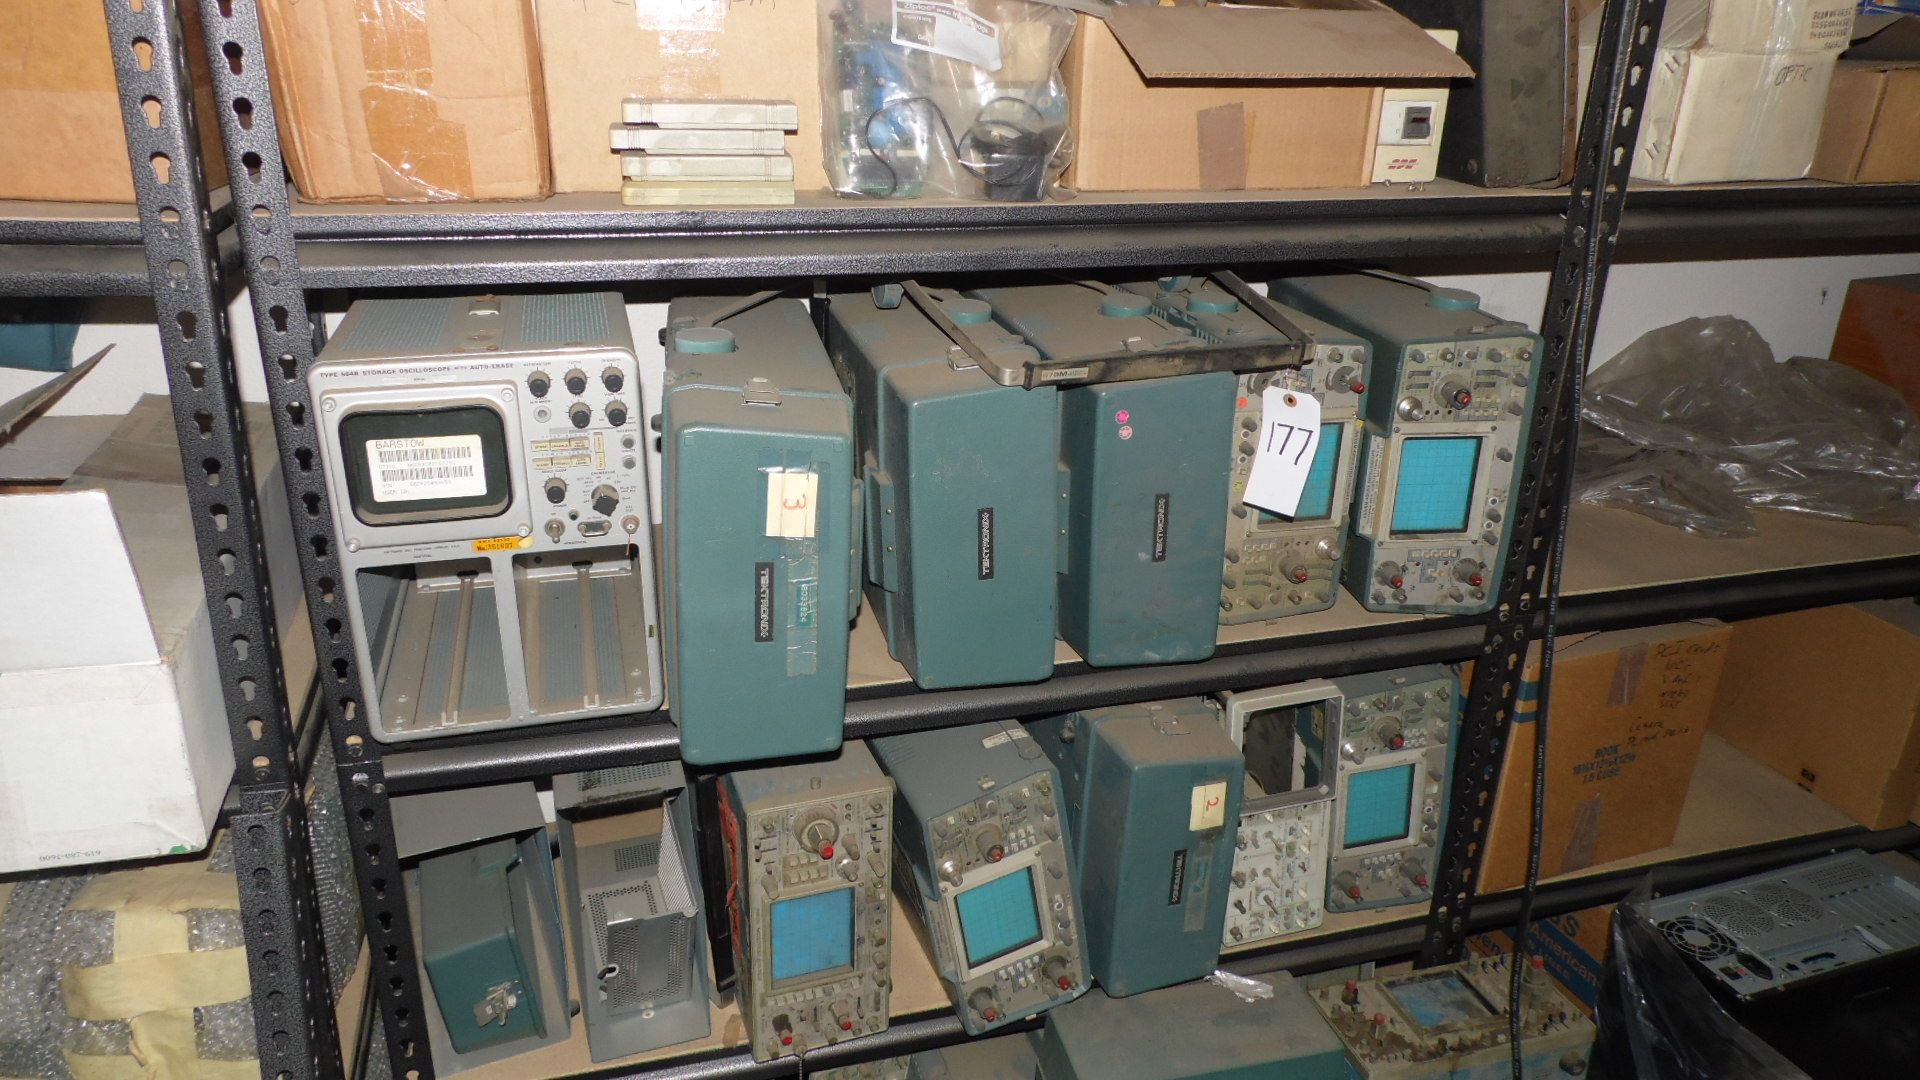 Lot 177 - ASSORTED TEKRONIX OSCILLOSCOPES (AS-IS)